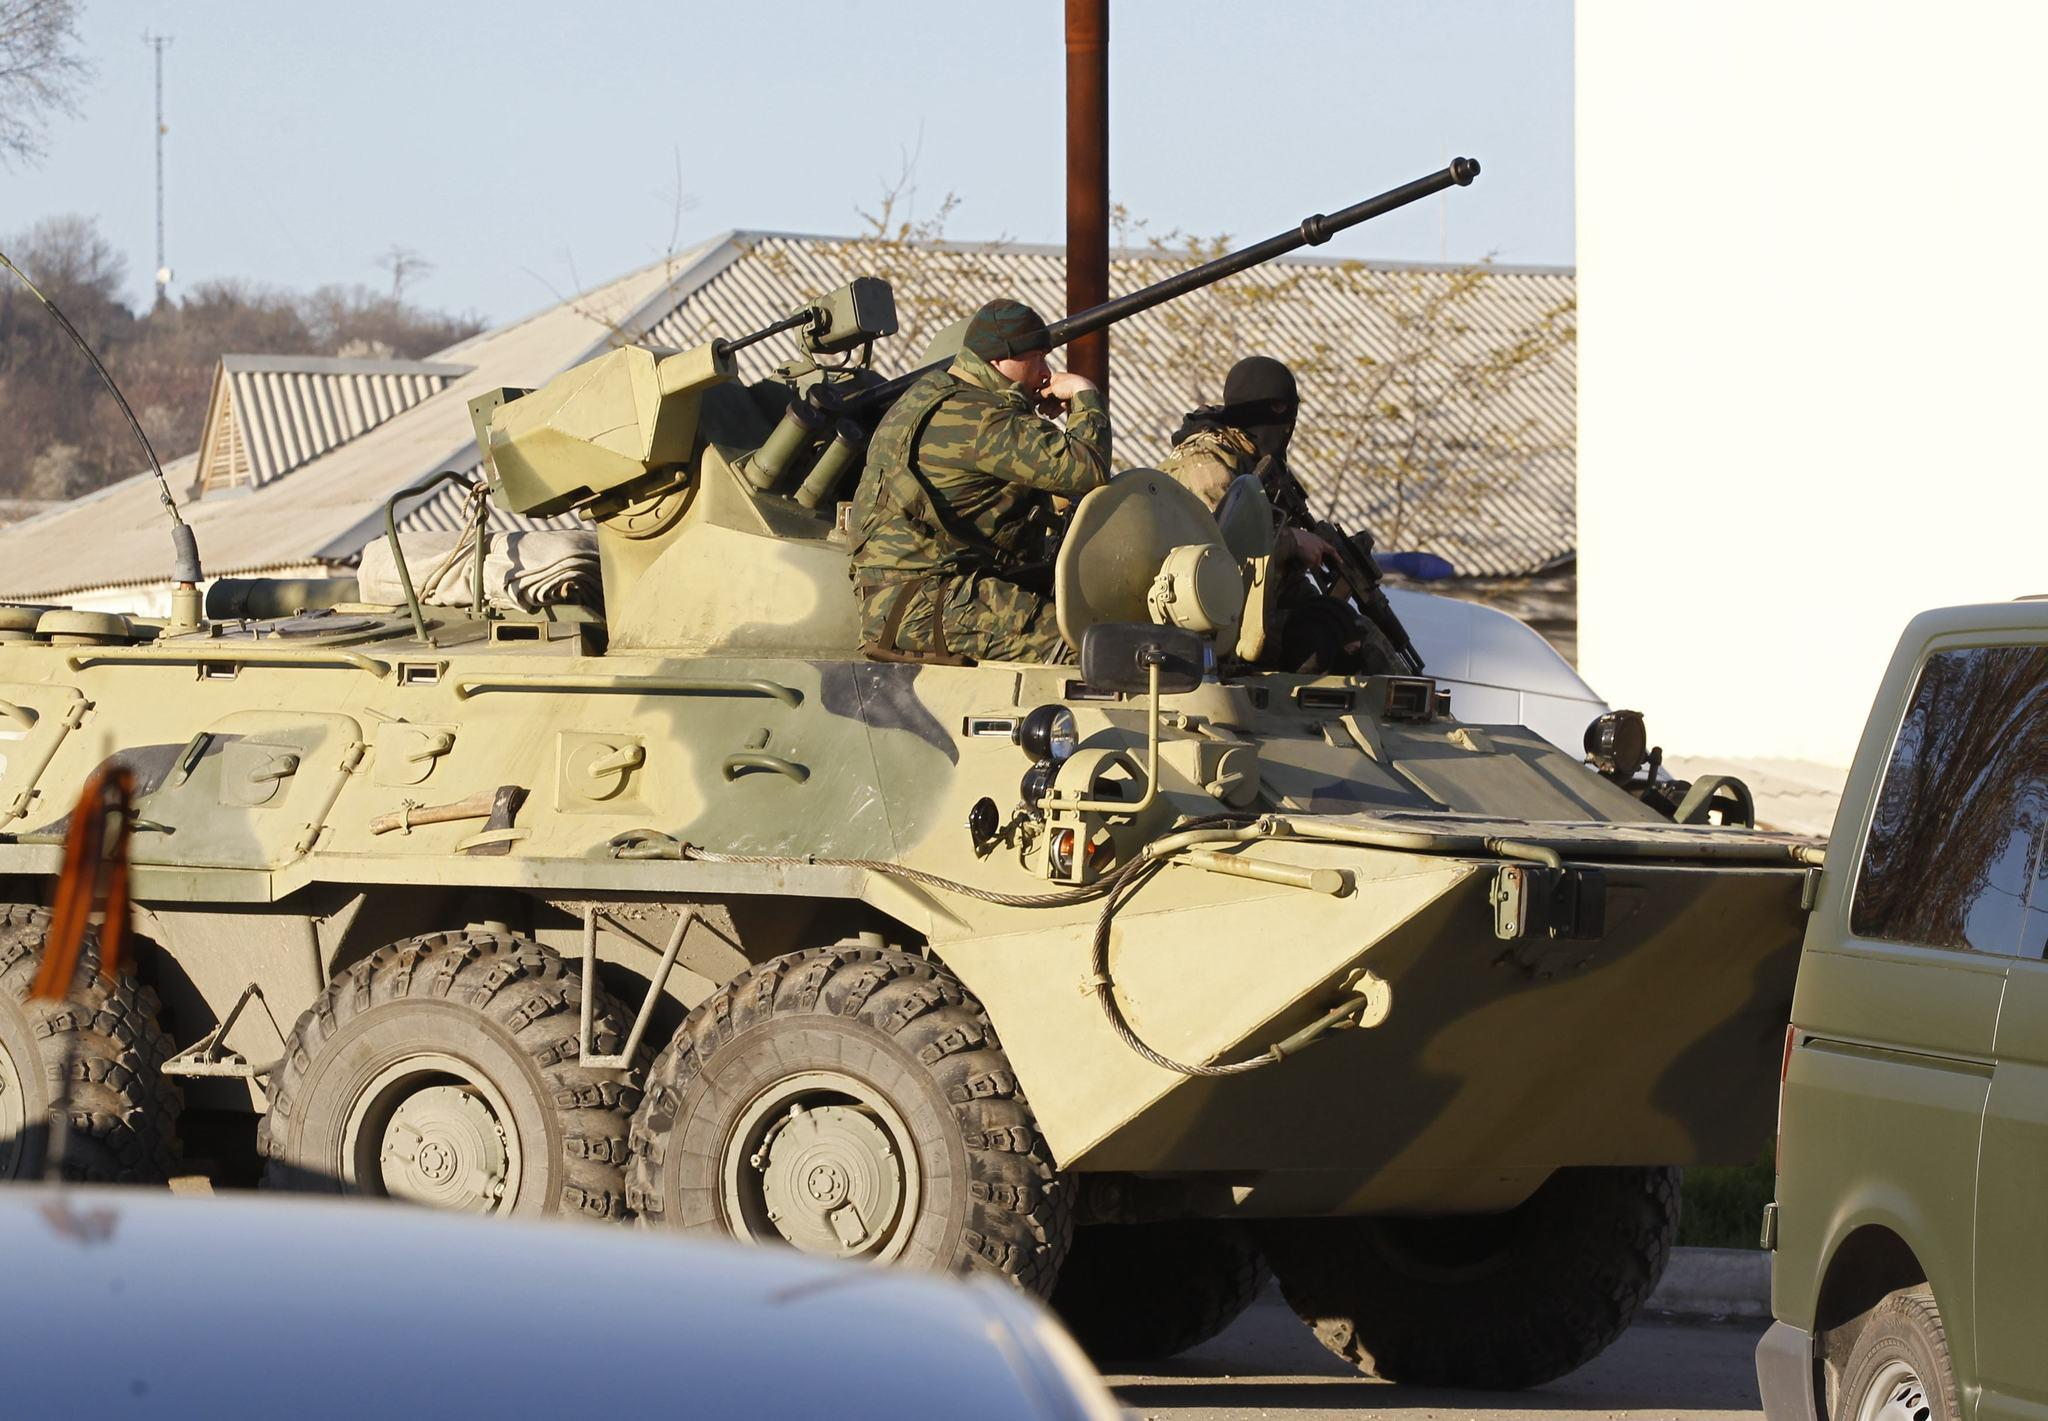 Armed men, believed to be Russian servicemen, sit in an armoured vehicle near a military base in the Crimean town of Belbek near Sevastopol on March 22. Russian troops have surrounded a Ukrainian airbase in Crimea and issued an ultimatum to forces inside to surrender.